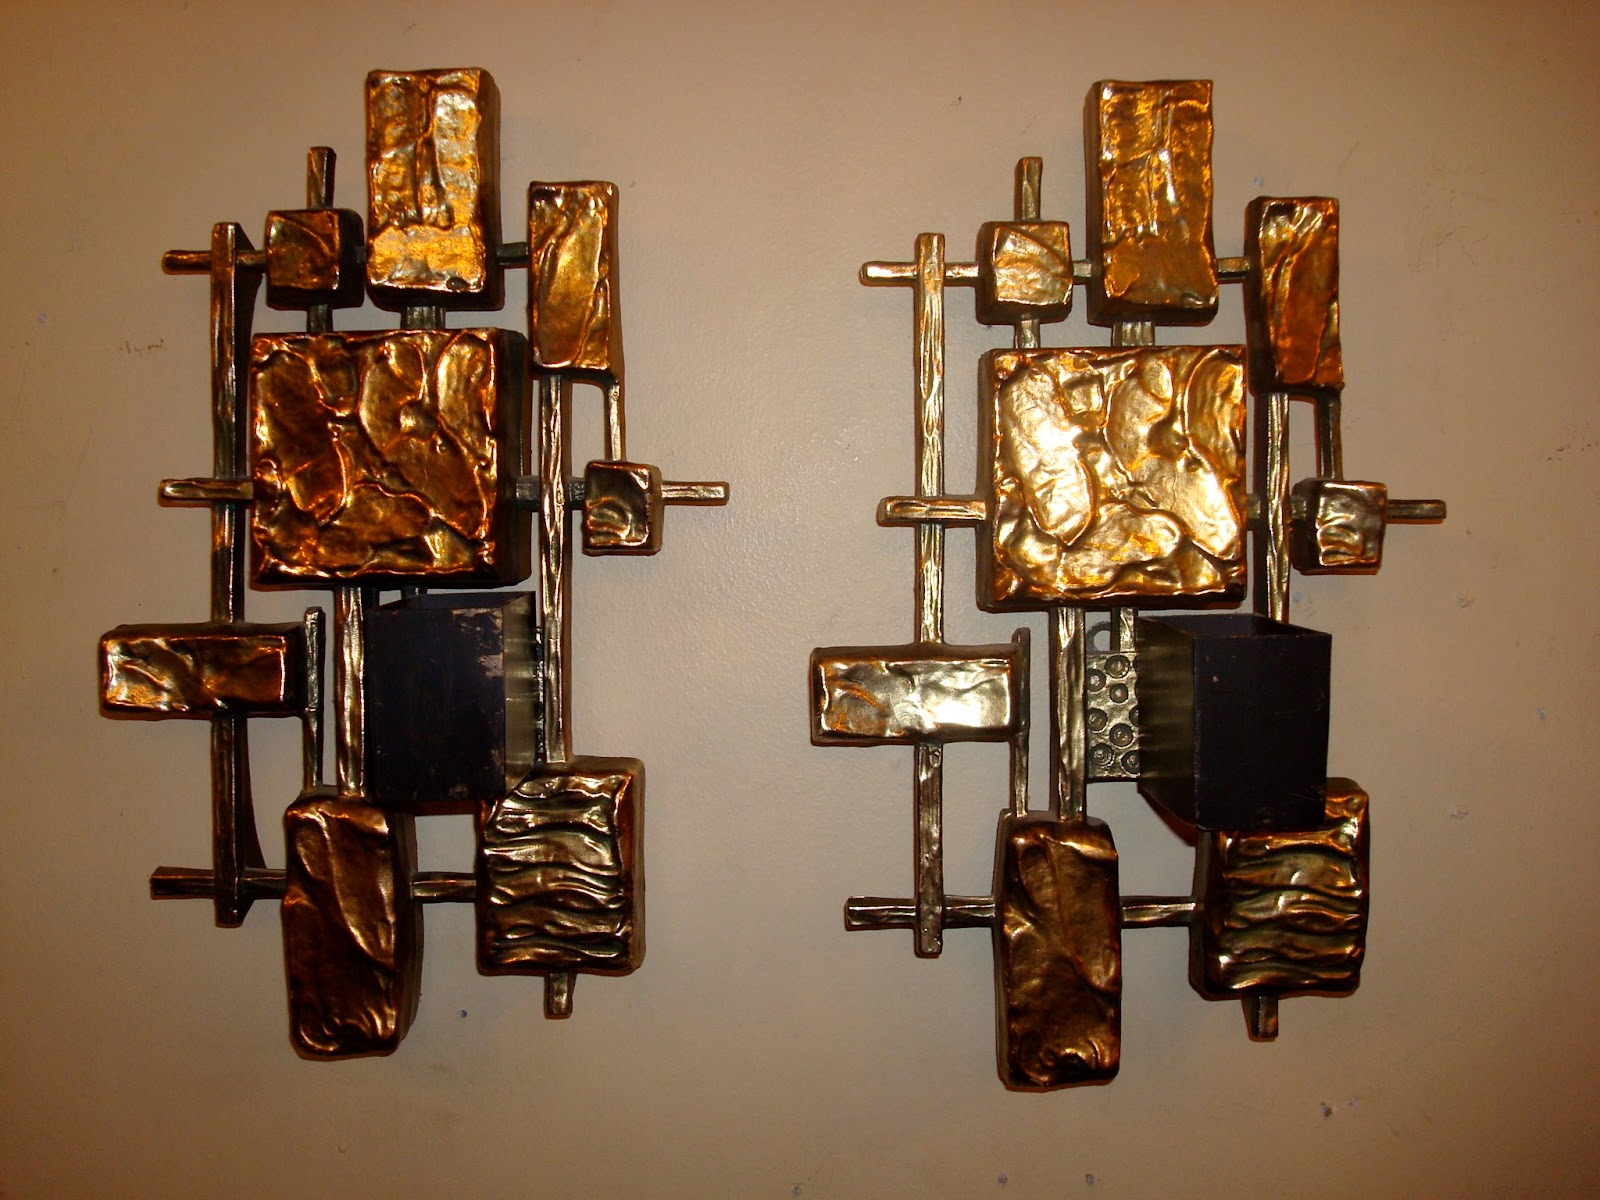 Pair Of Brutalist Wall Sconce Candle Holders Styled In The Manner Of Paul  Evans